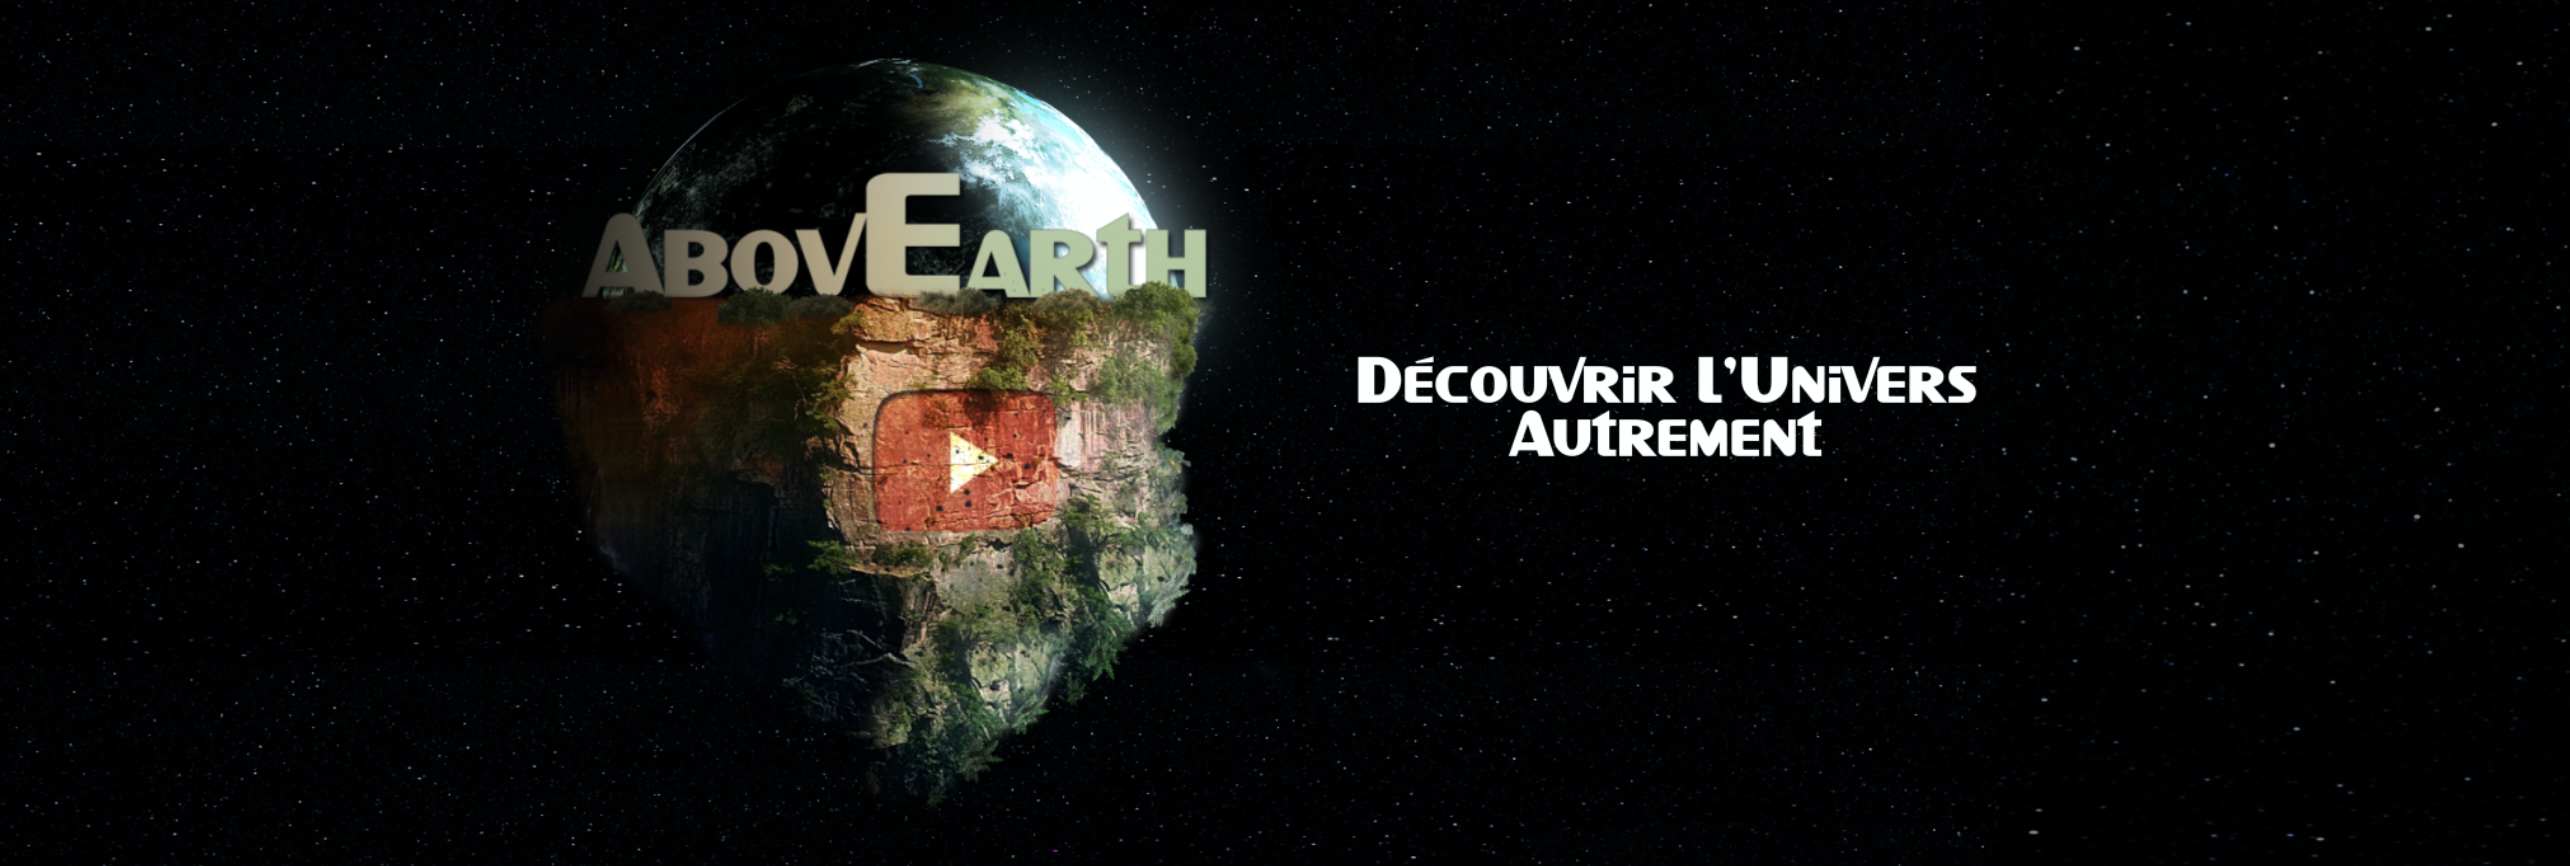 Above Earth - Voyage au coeur de l'Univers